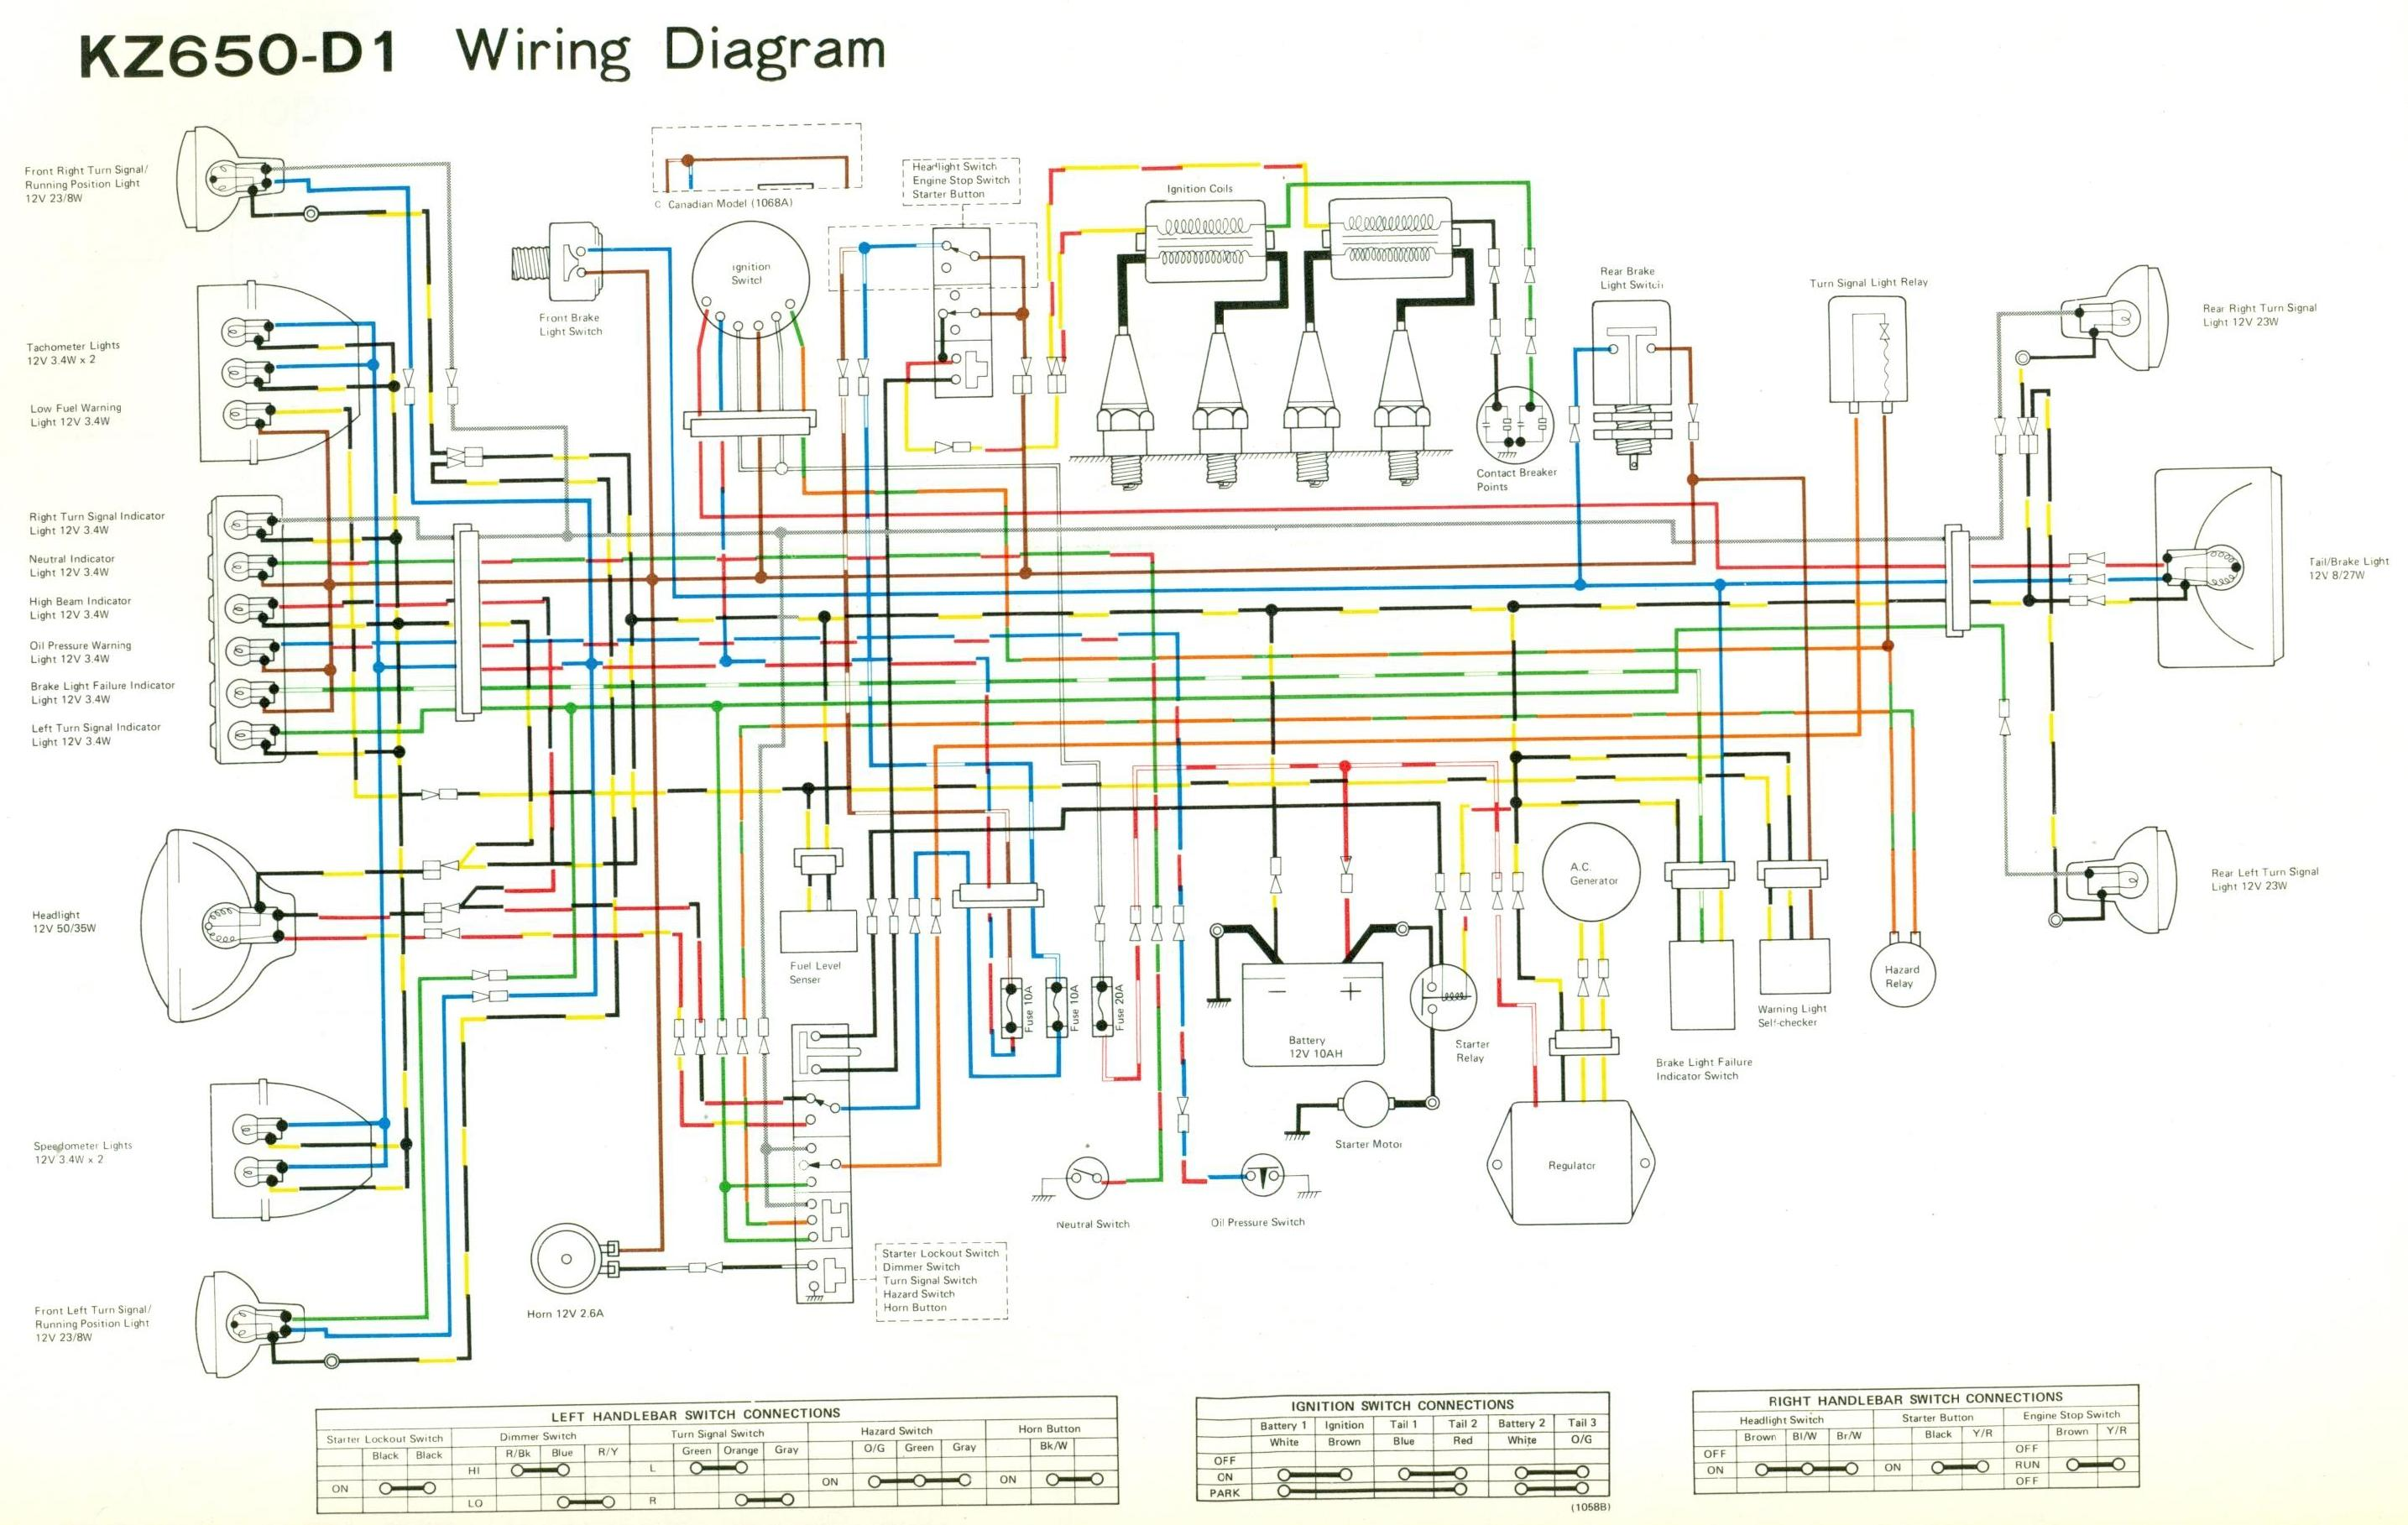 Wiring Diagrams 1978 Puch Diagram Kz650 D